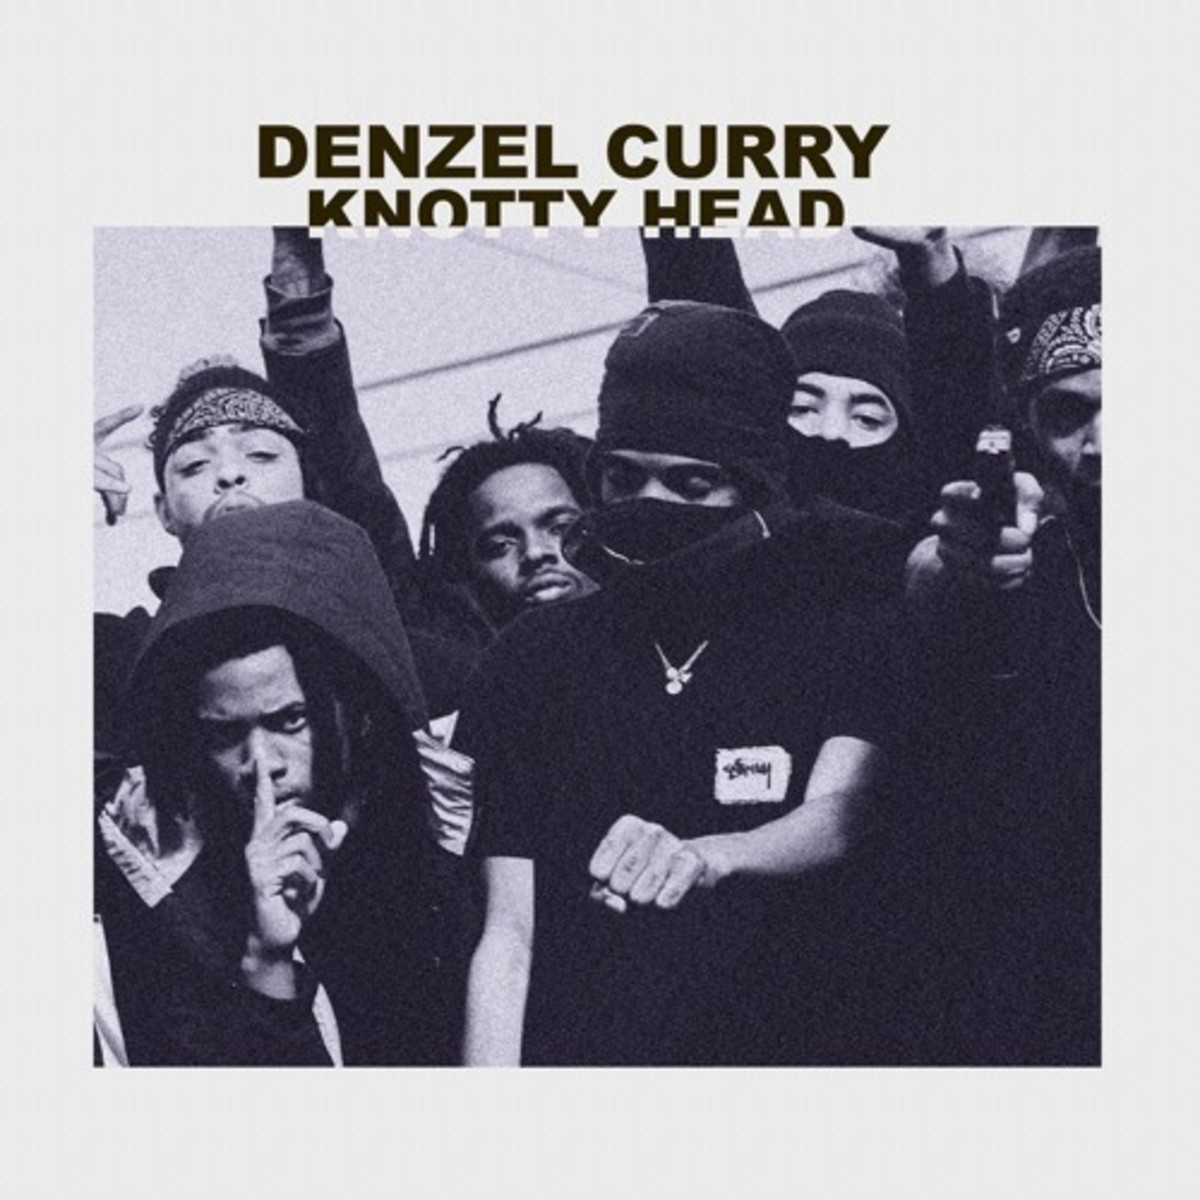 denzel-curry-knotty-head.jpg